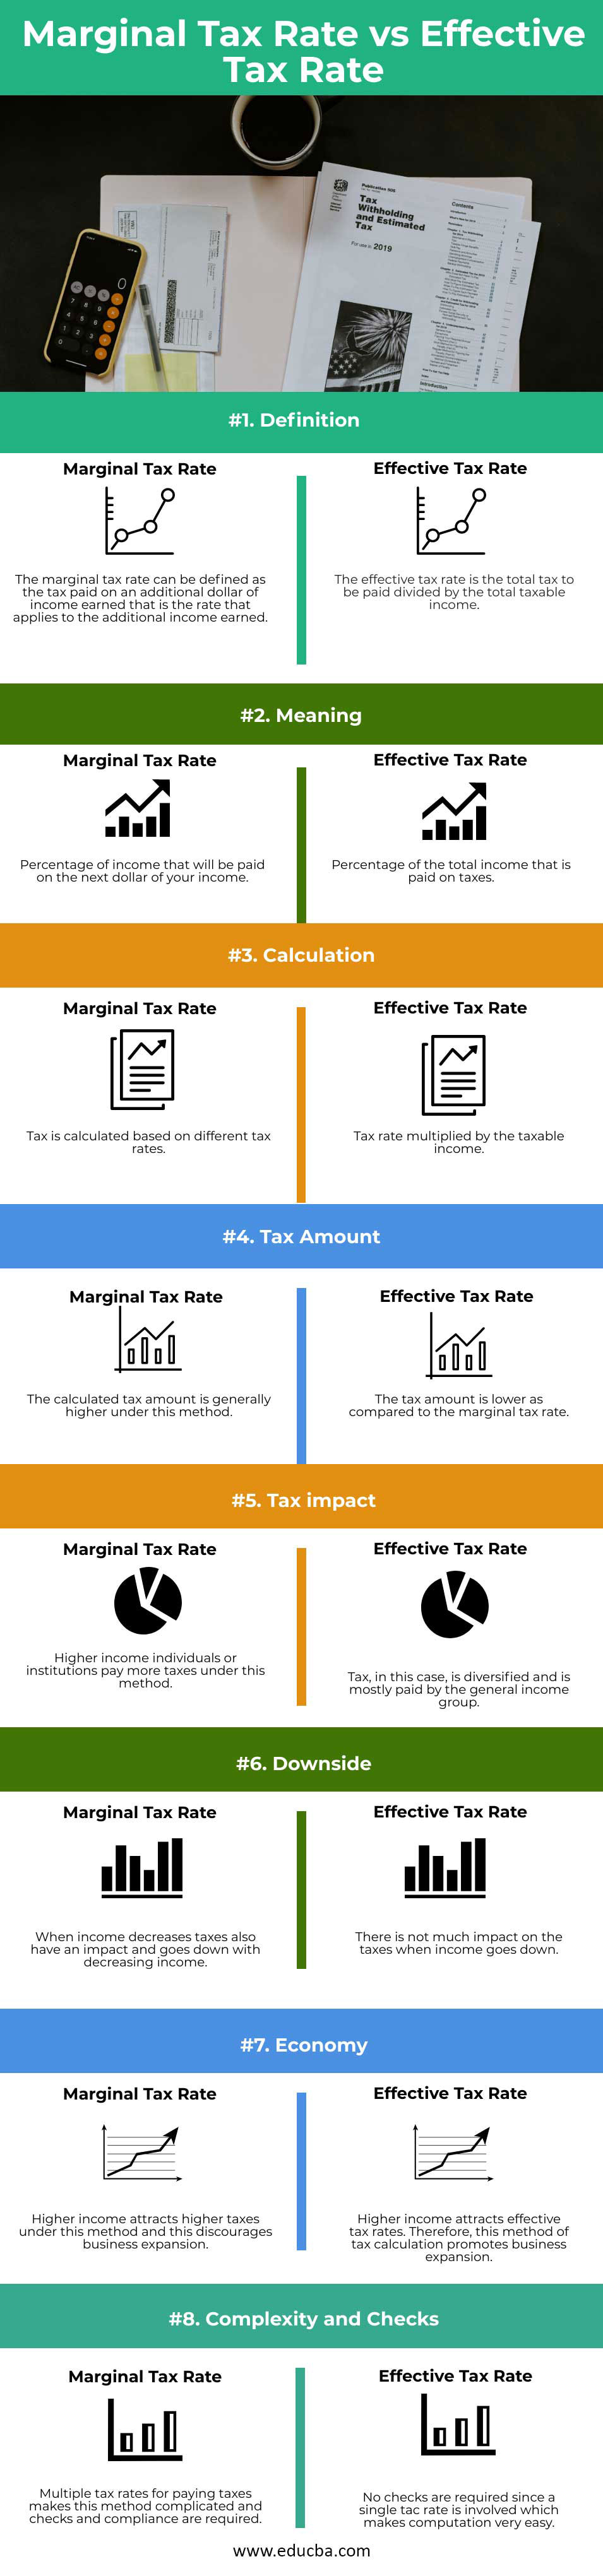 Marginal-Tax-Rate-vs-Effective-Tax-Rate-info